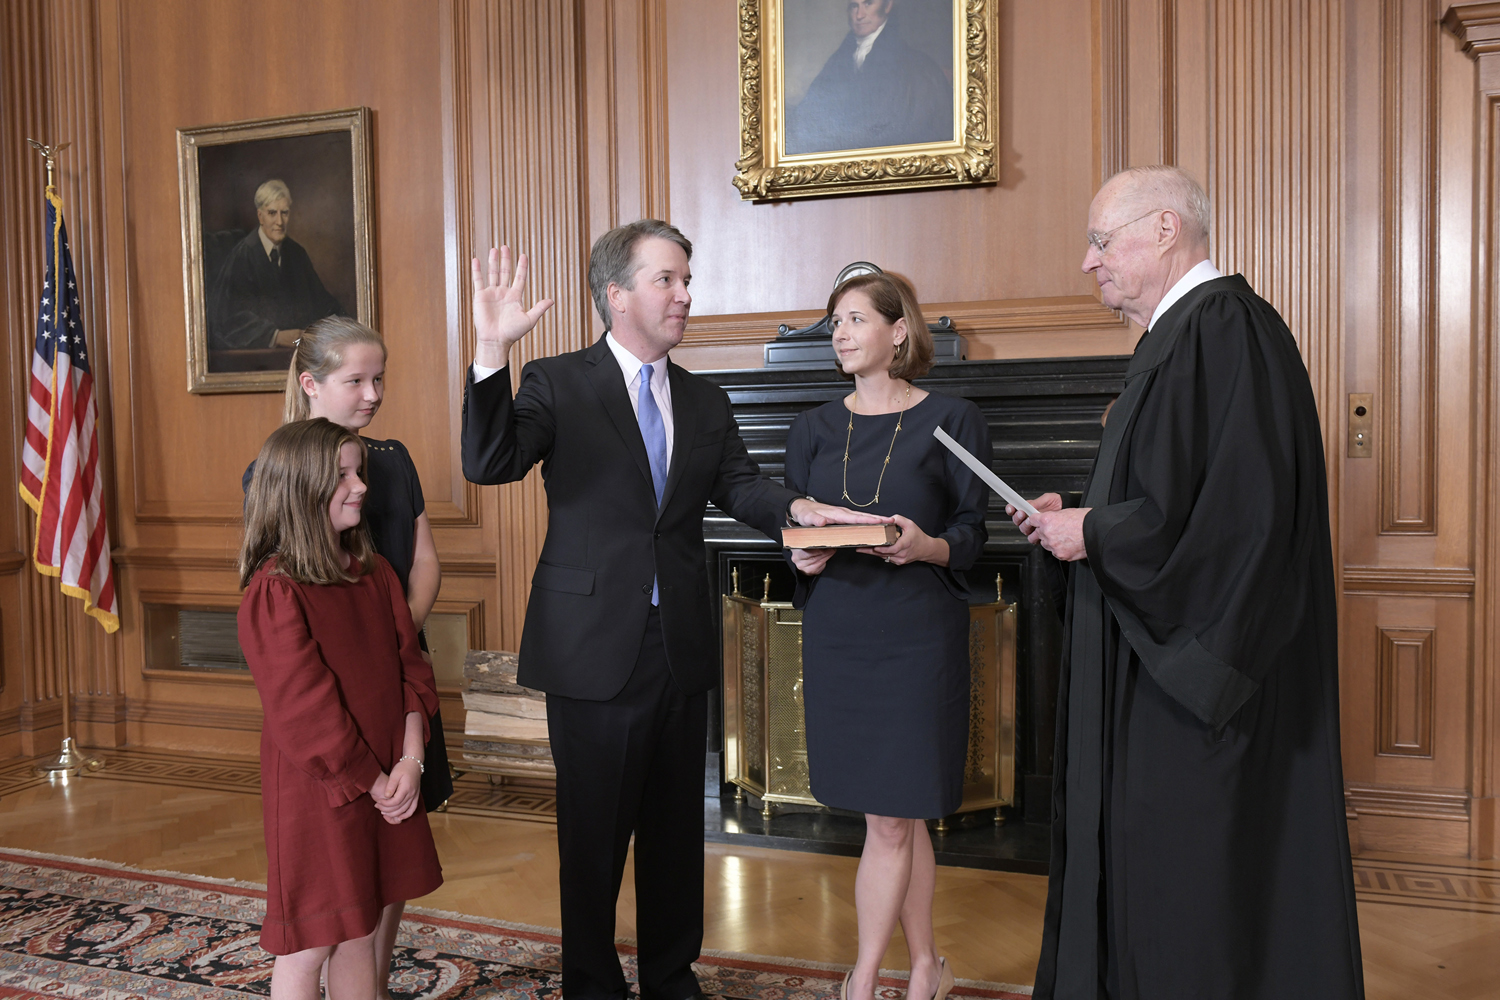 Retired Justice Anthony M. Kennedy, administers the Judicial Oath to Judge Brett M. Kavanaugh in the Justices' Conference Room at the Supreme Court Building on Saturday in Washington, DC.